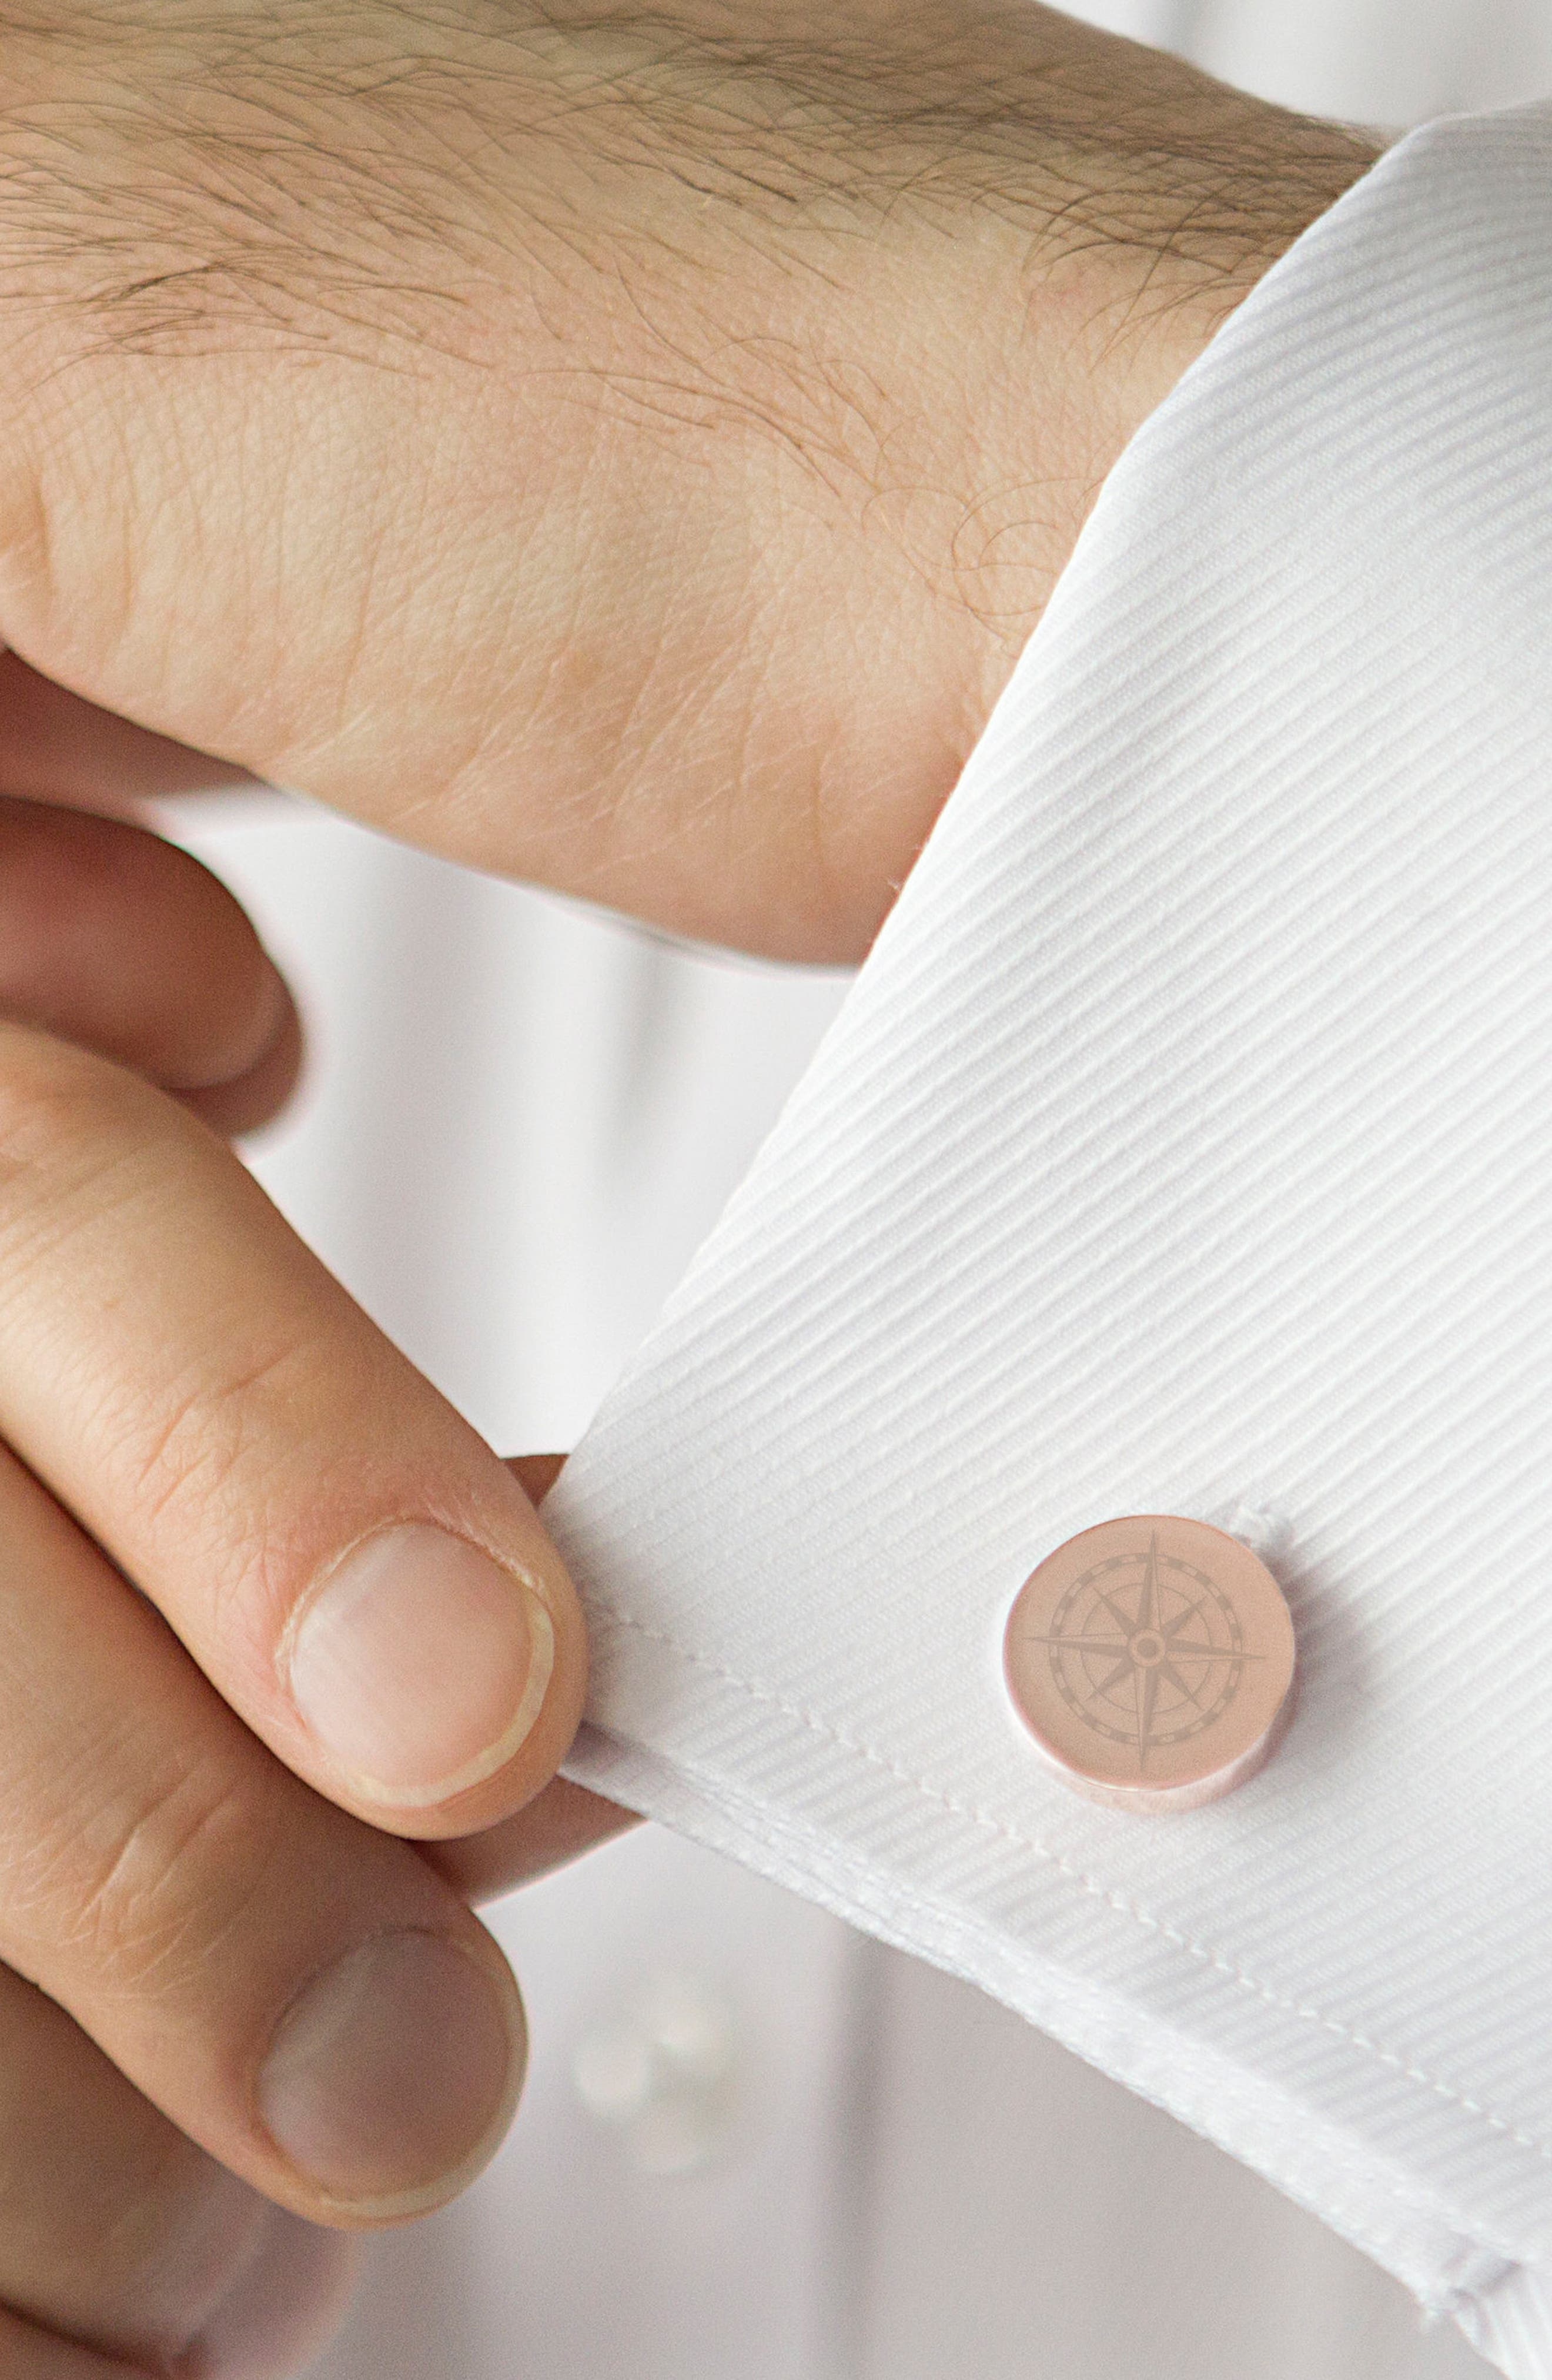 Compass Cuff Links,                             Alternate thumbnail 3, color,                             ROSE GOLD